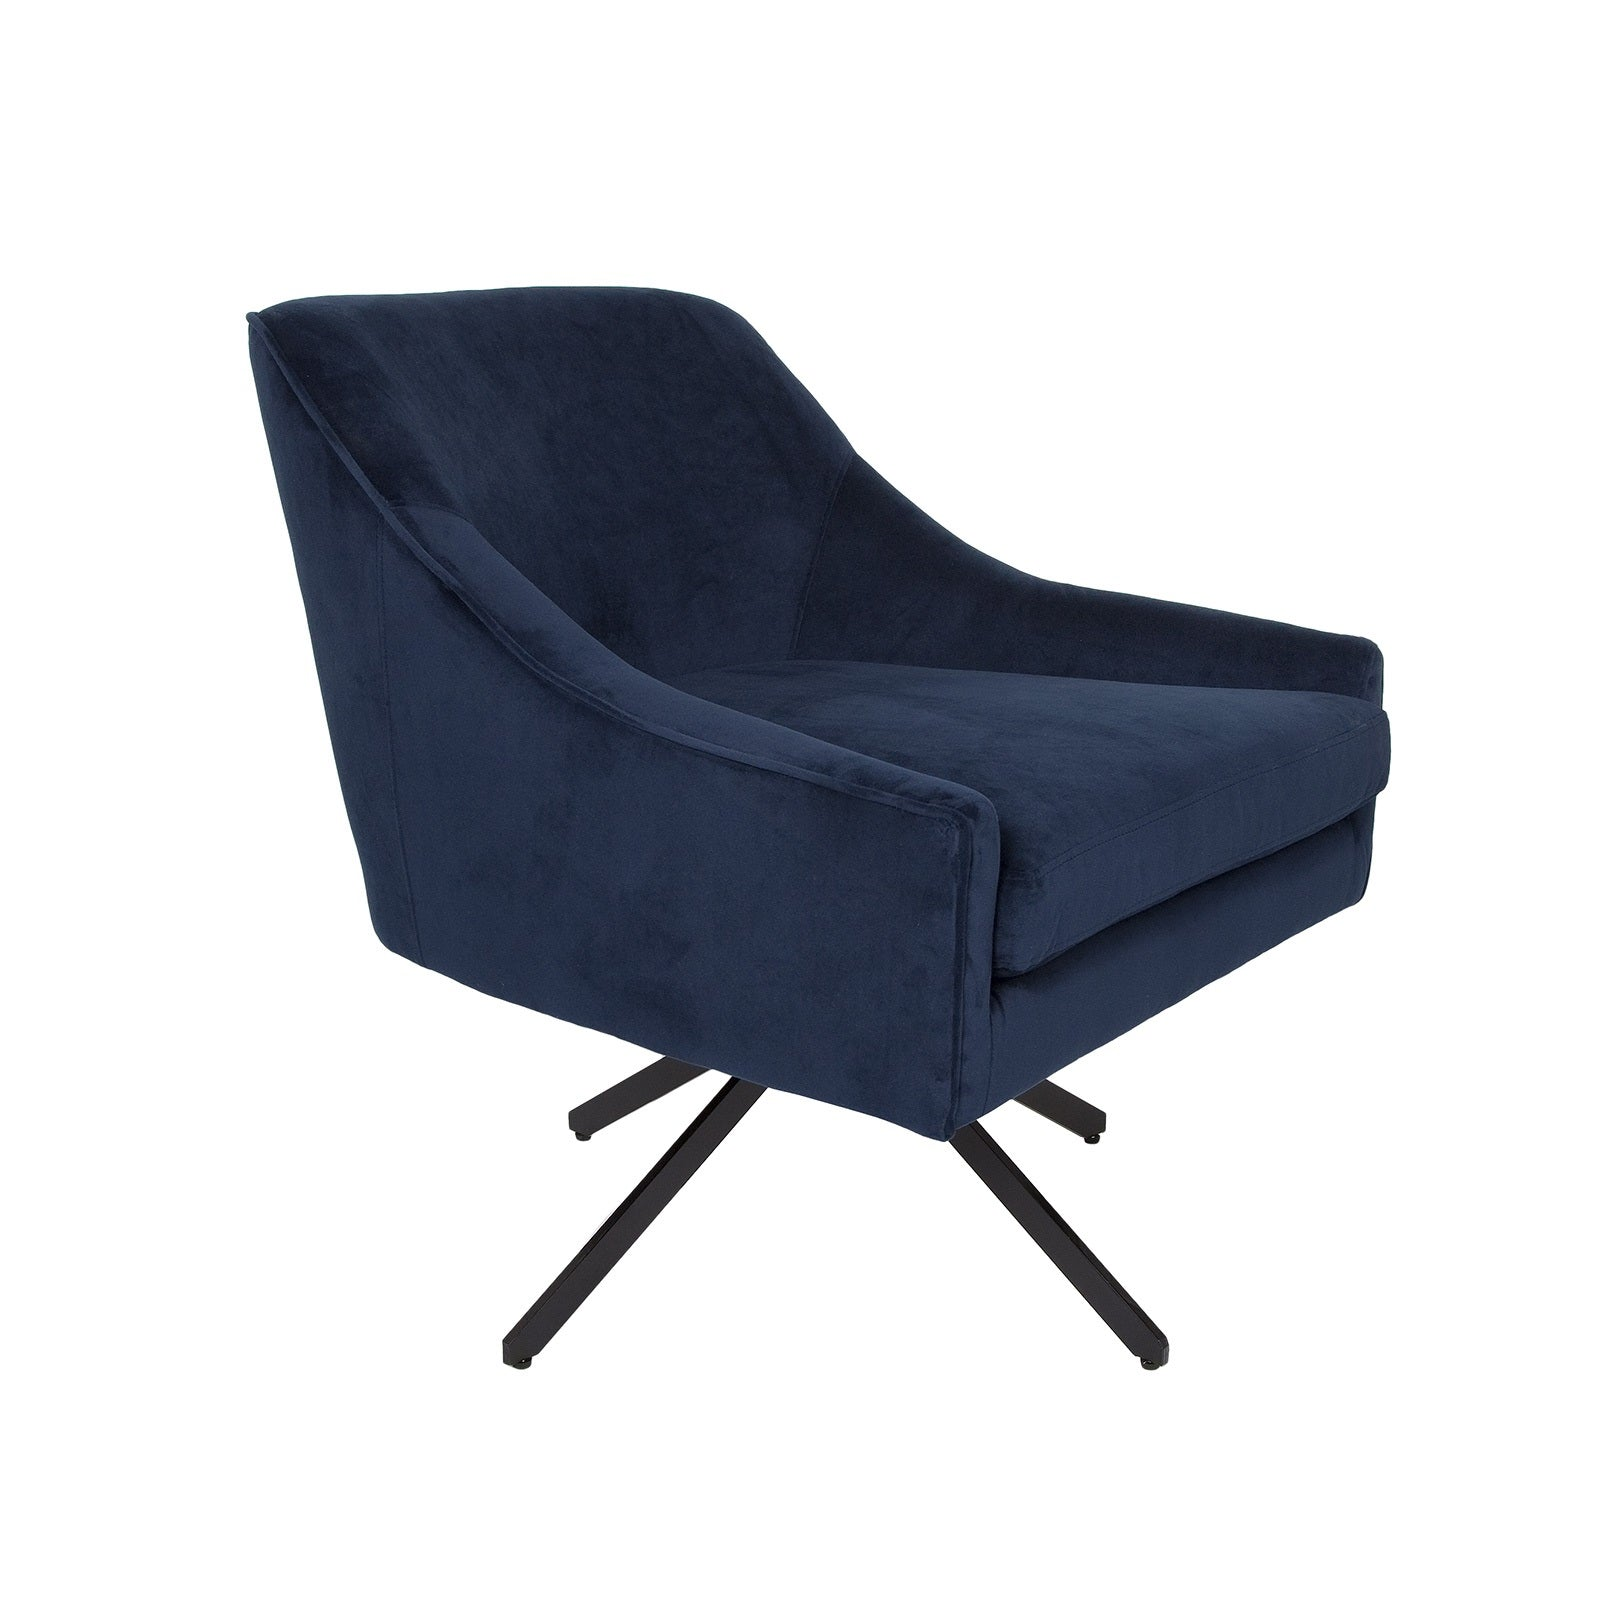 Ethan Swivel Chair - Ink Blue